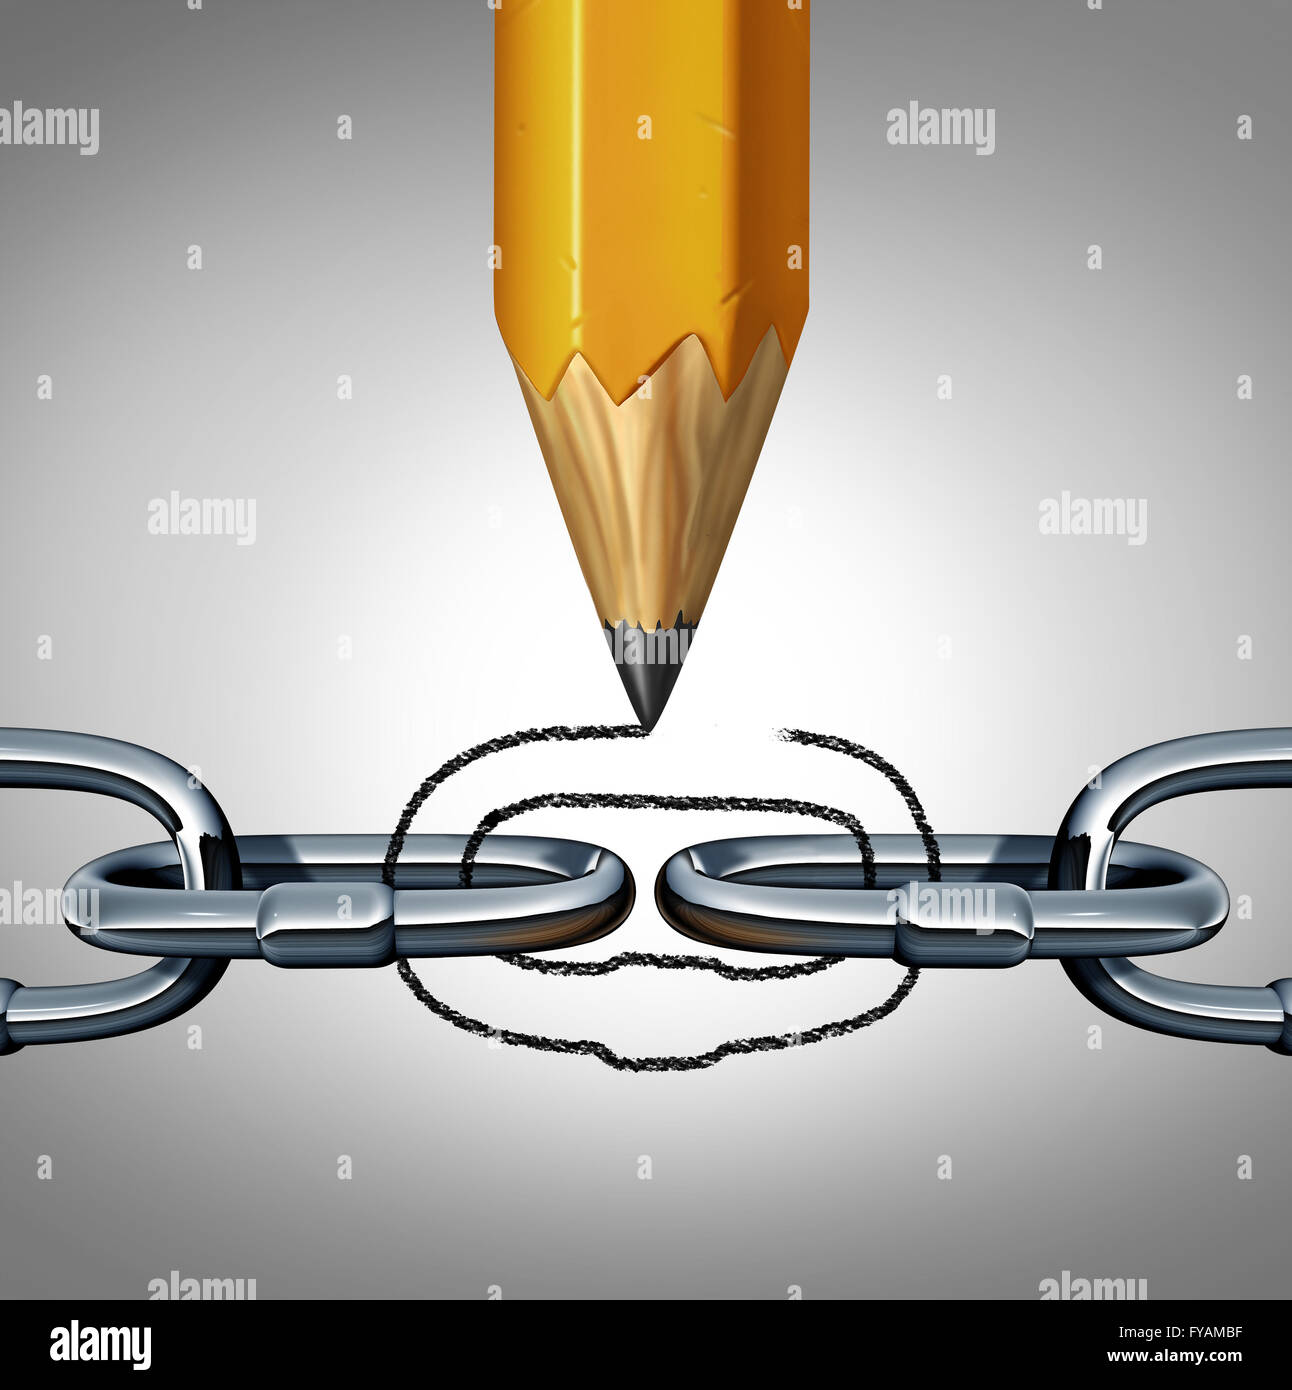 Concept of strength as a disconnected chain with a pencil drawing a link to unite the 3D illustration object as - Stock Image